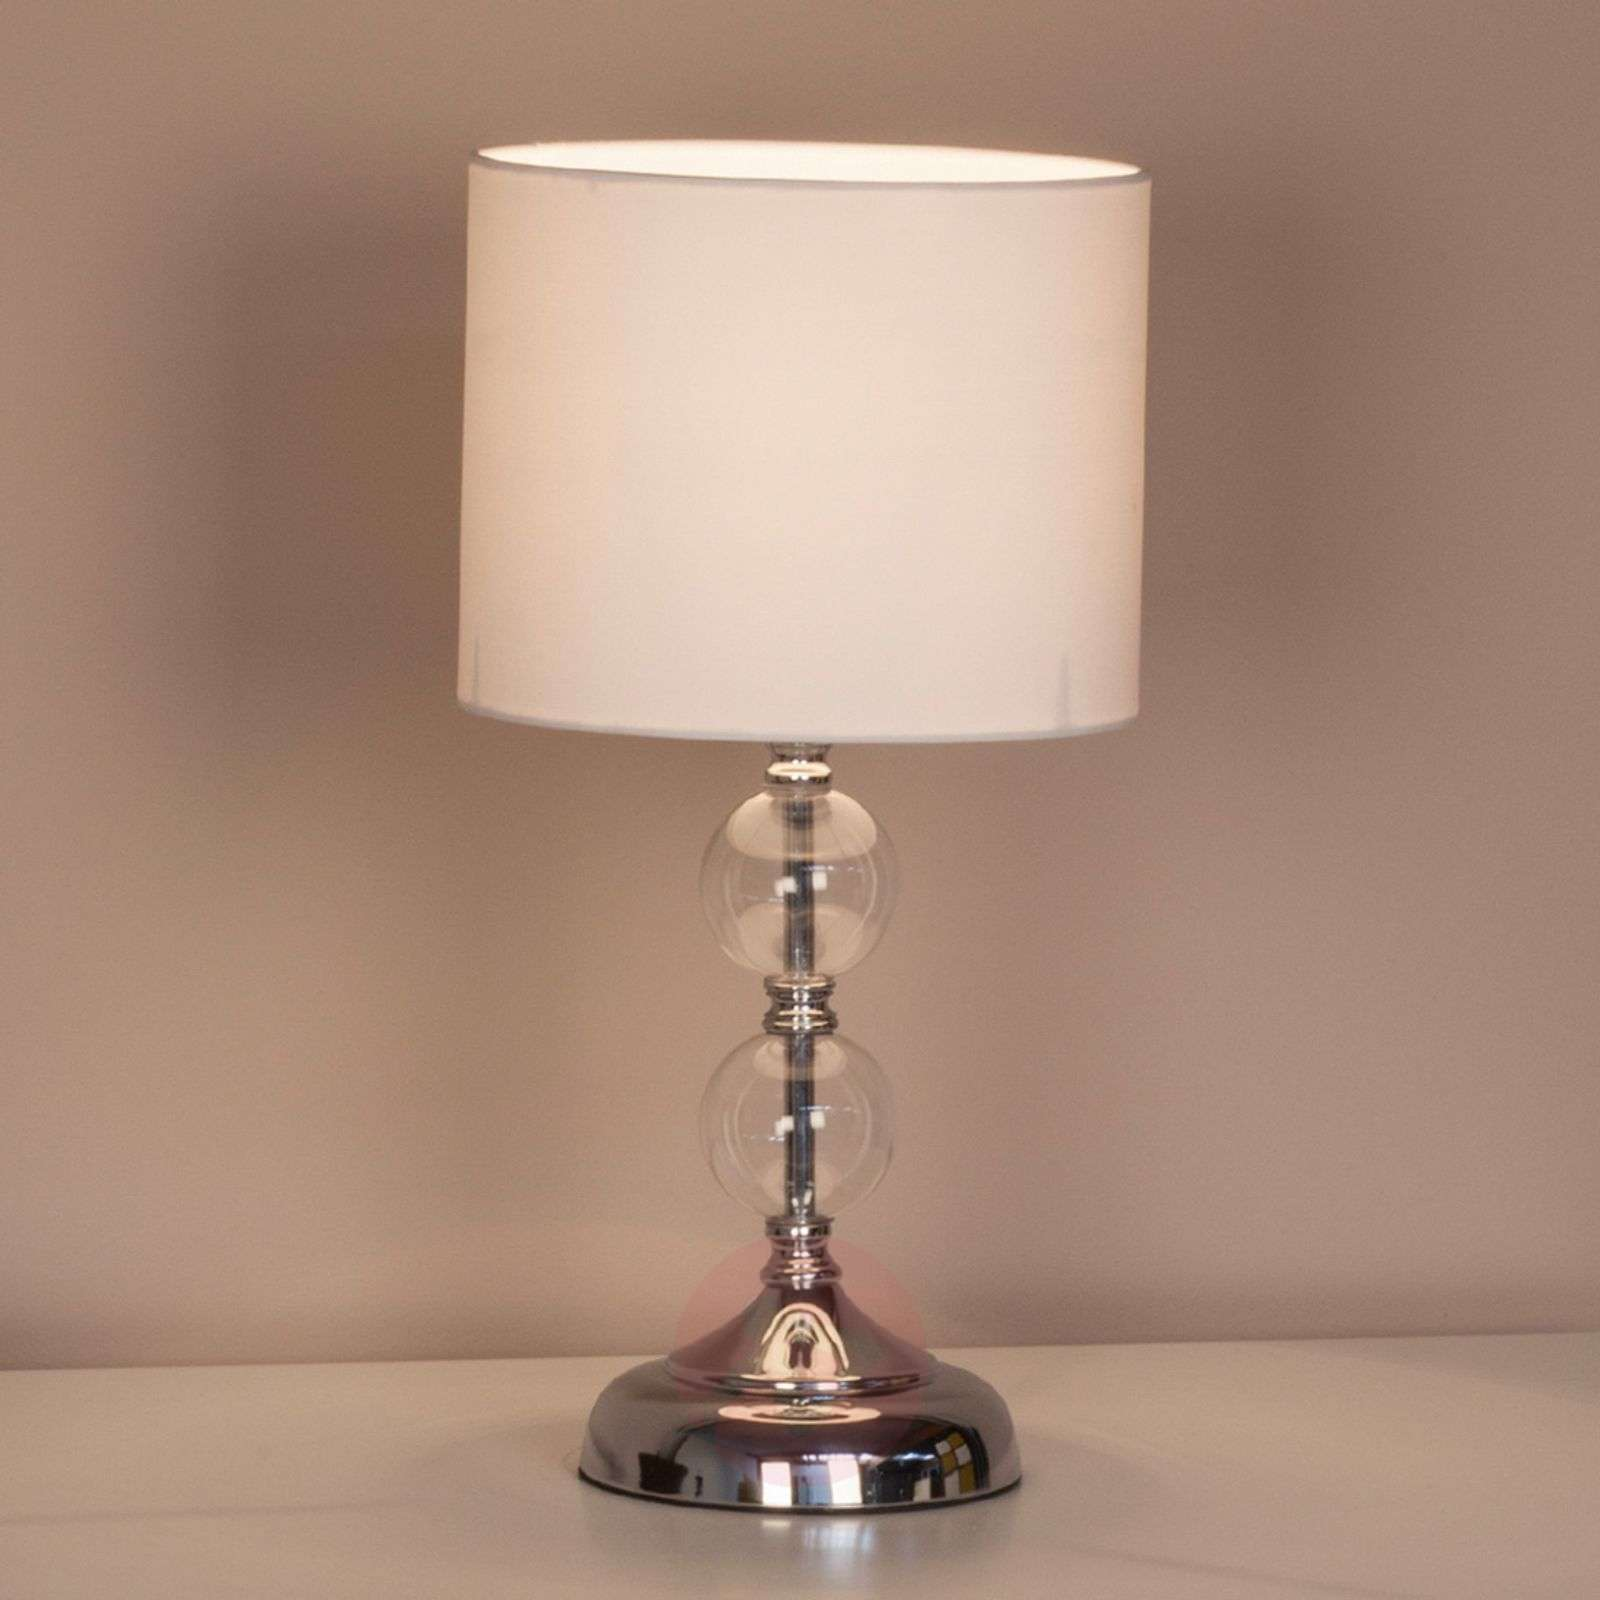 Decorative table lamp Rom with fabric lampshade_1508949_1